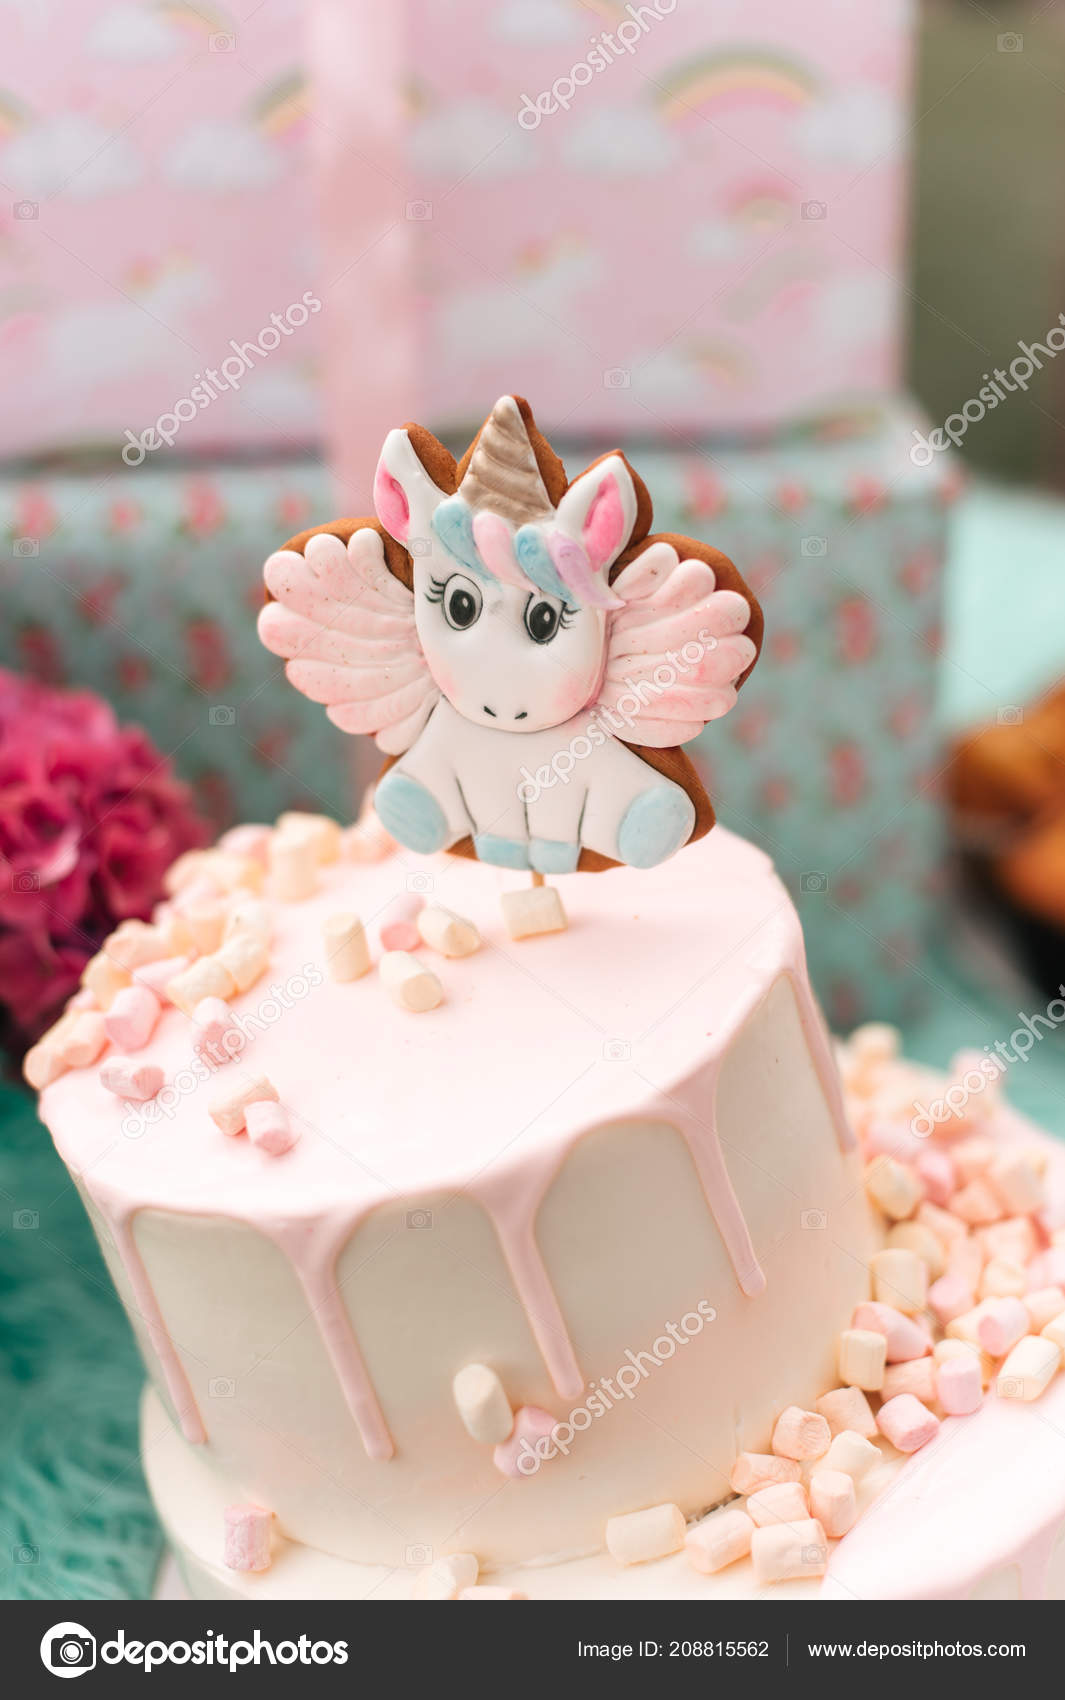 Sweet Birthday Cake Unicorn Decoration Table Stock Photo